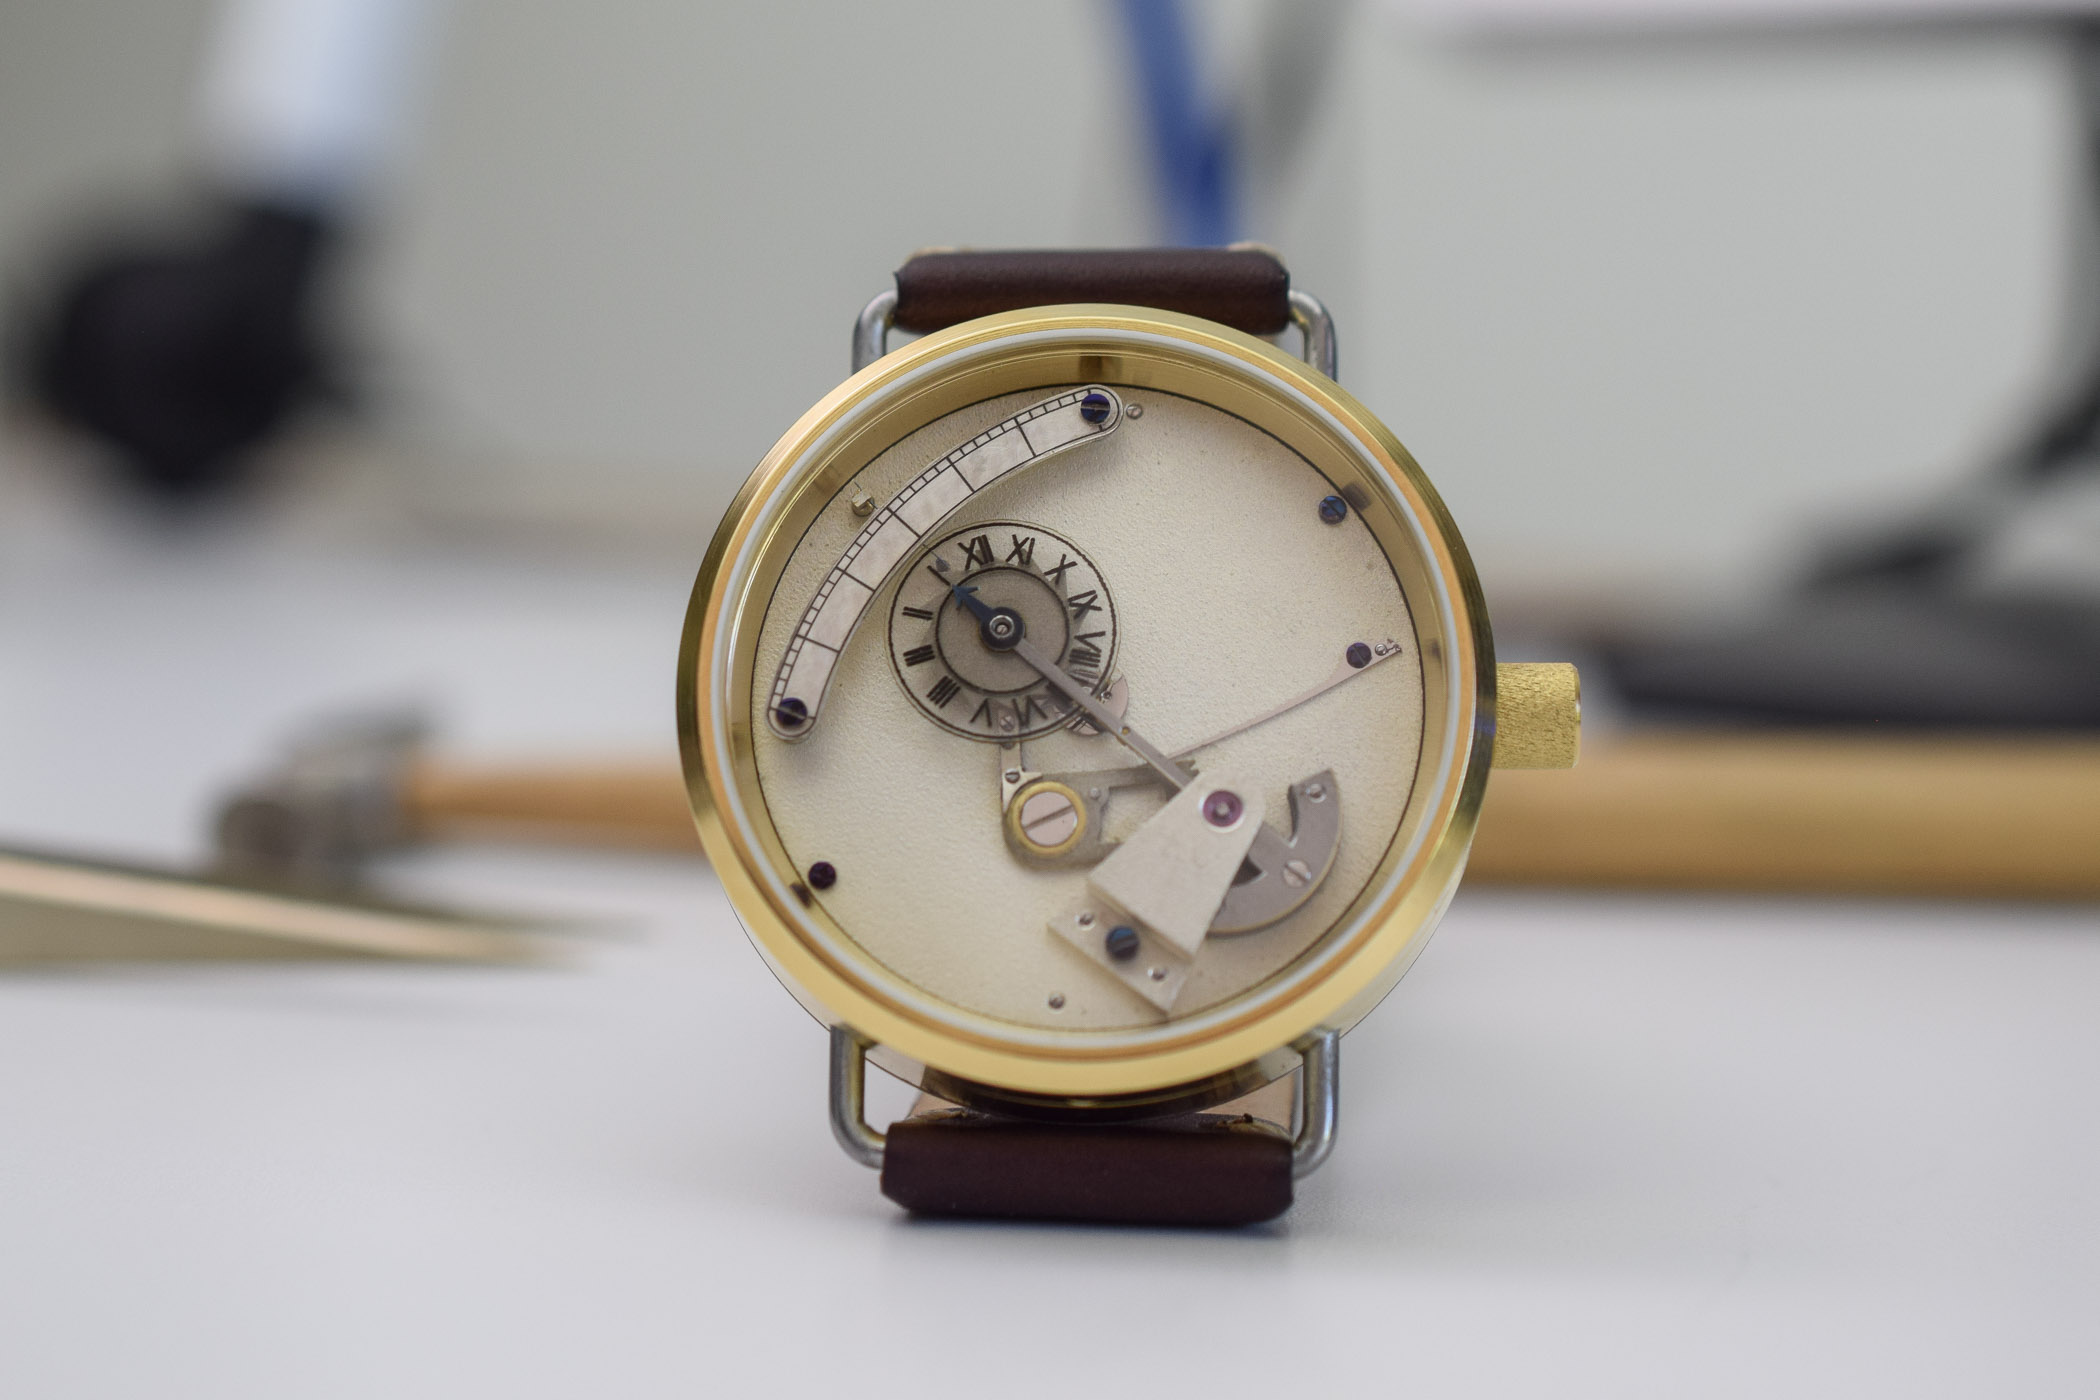 Antonin Falk Jumping Hours and Retrograde Minutes Montre ecole